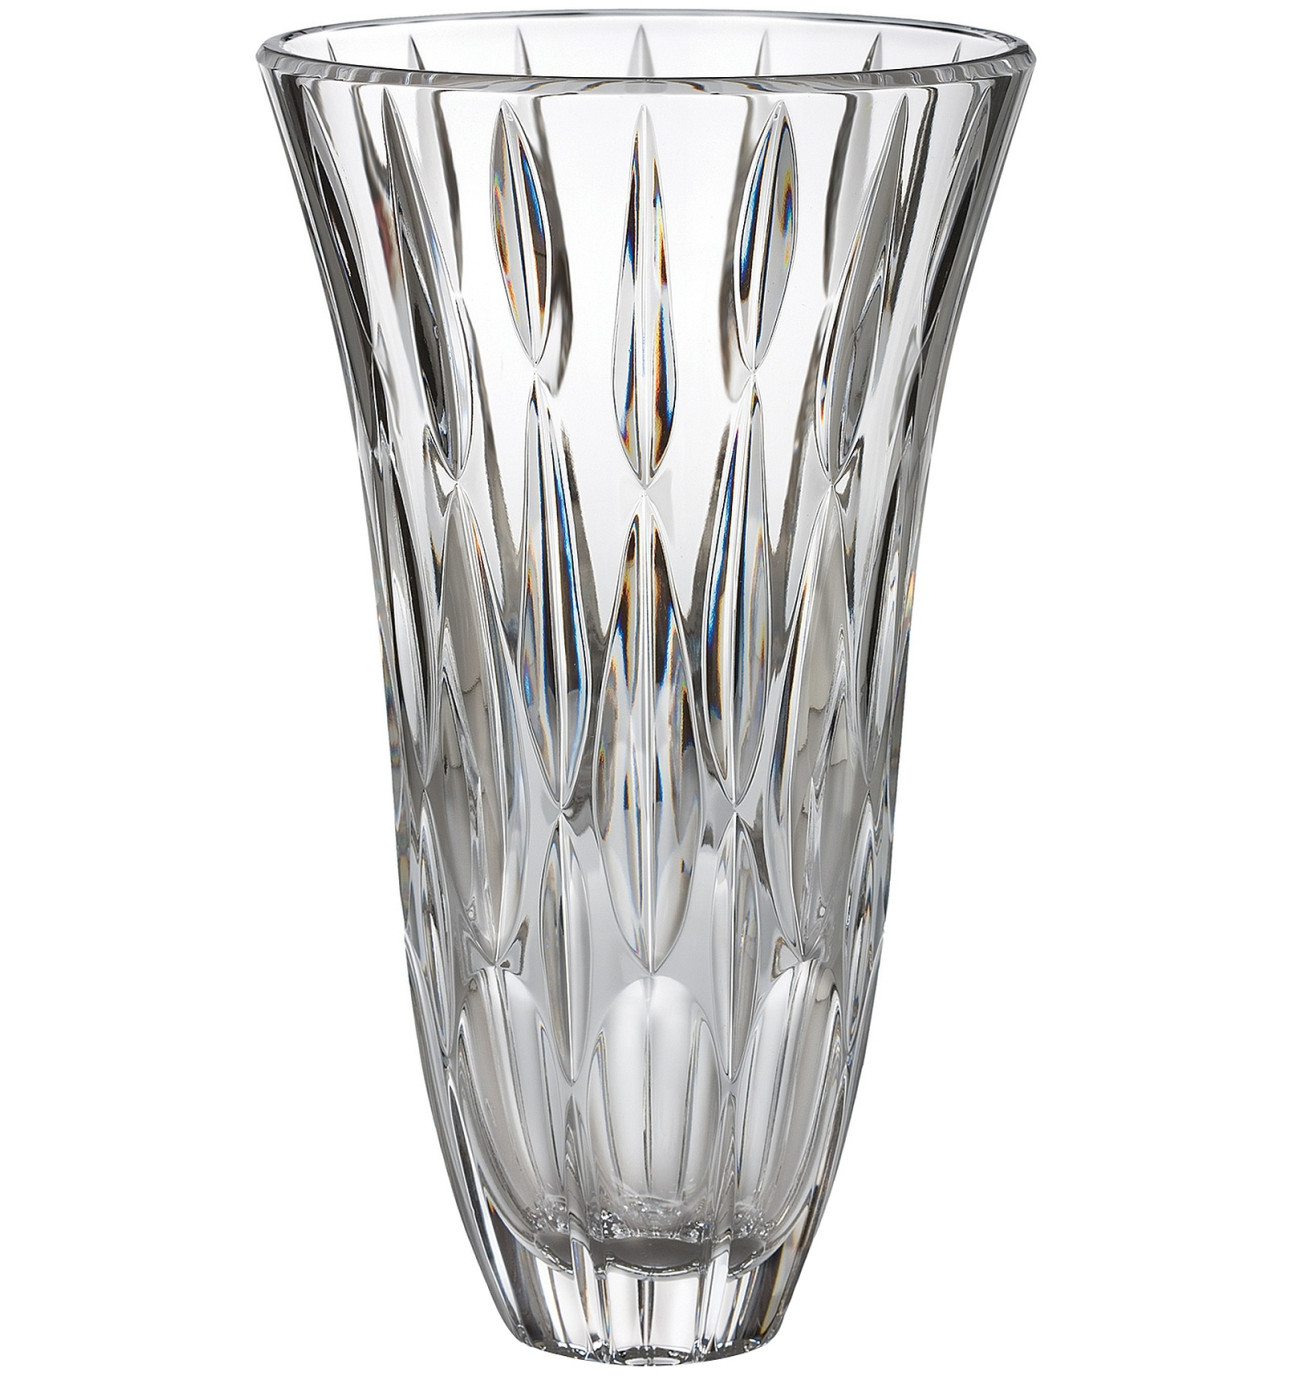 Marquis rainfall vase 28cm david jones marquis rainfall vase 23cm 5800 reviewsmspy